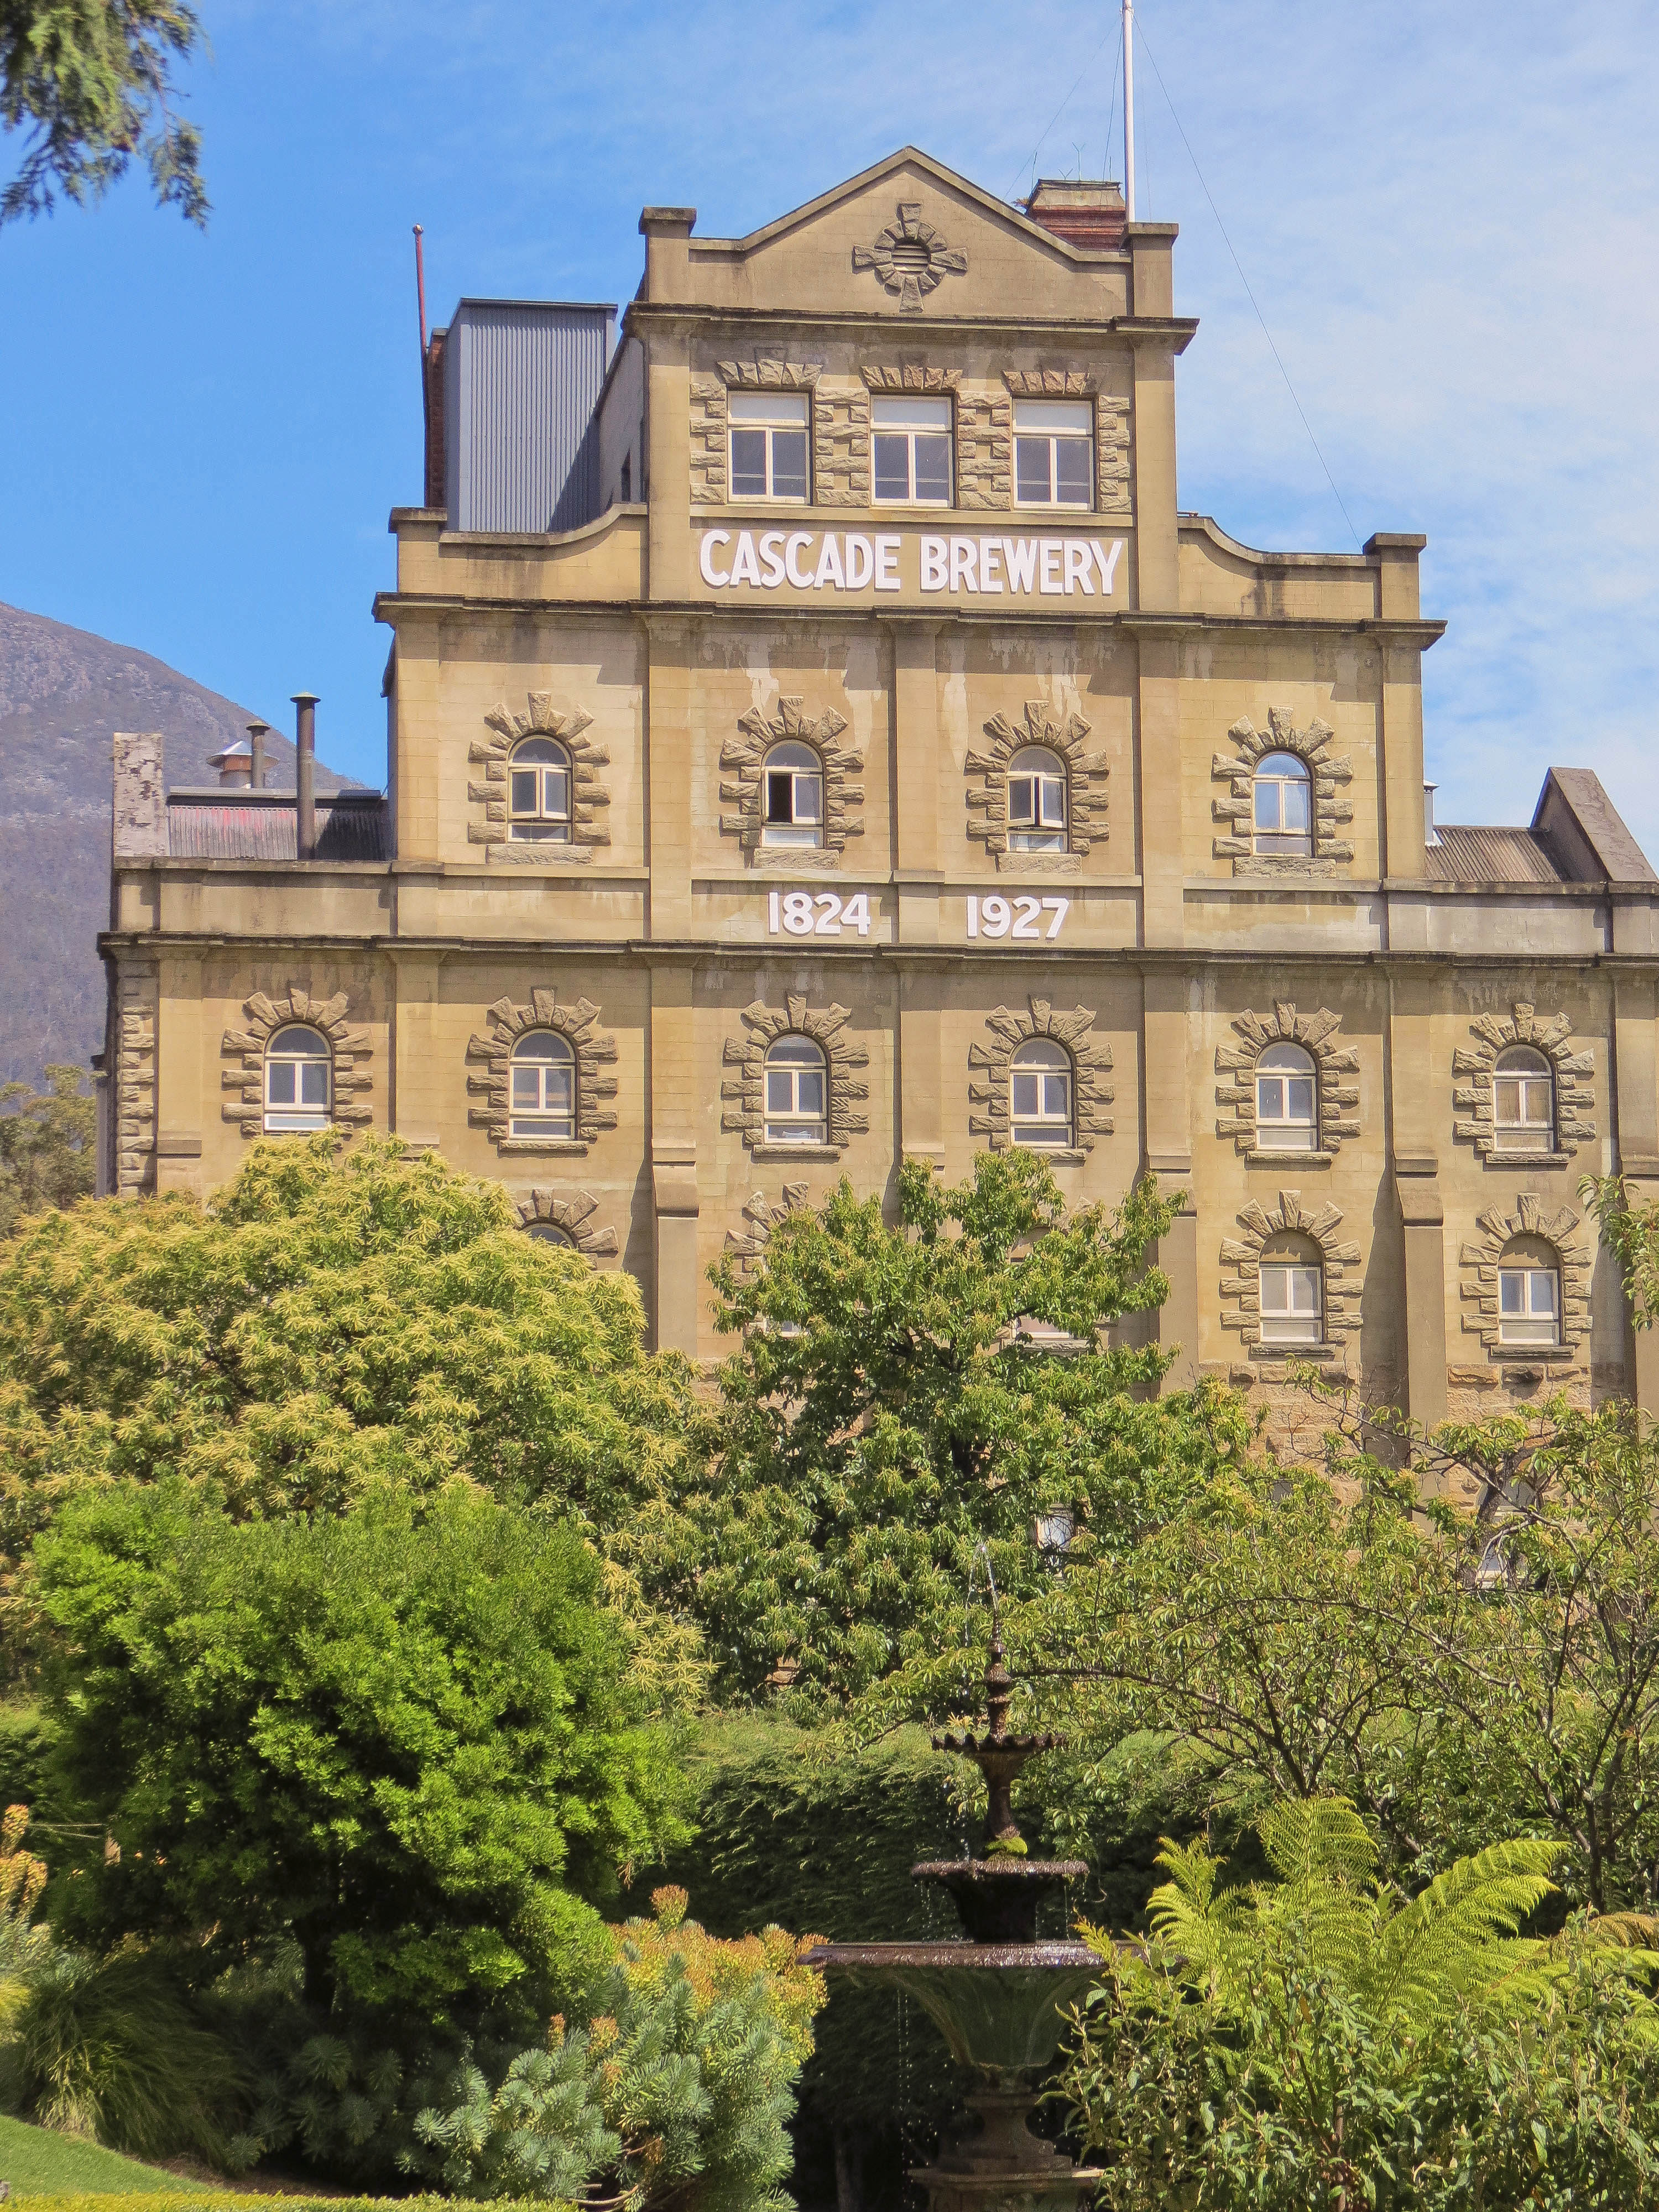 Hobart guided tours